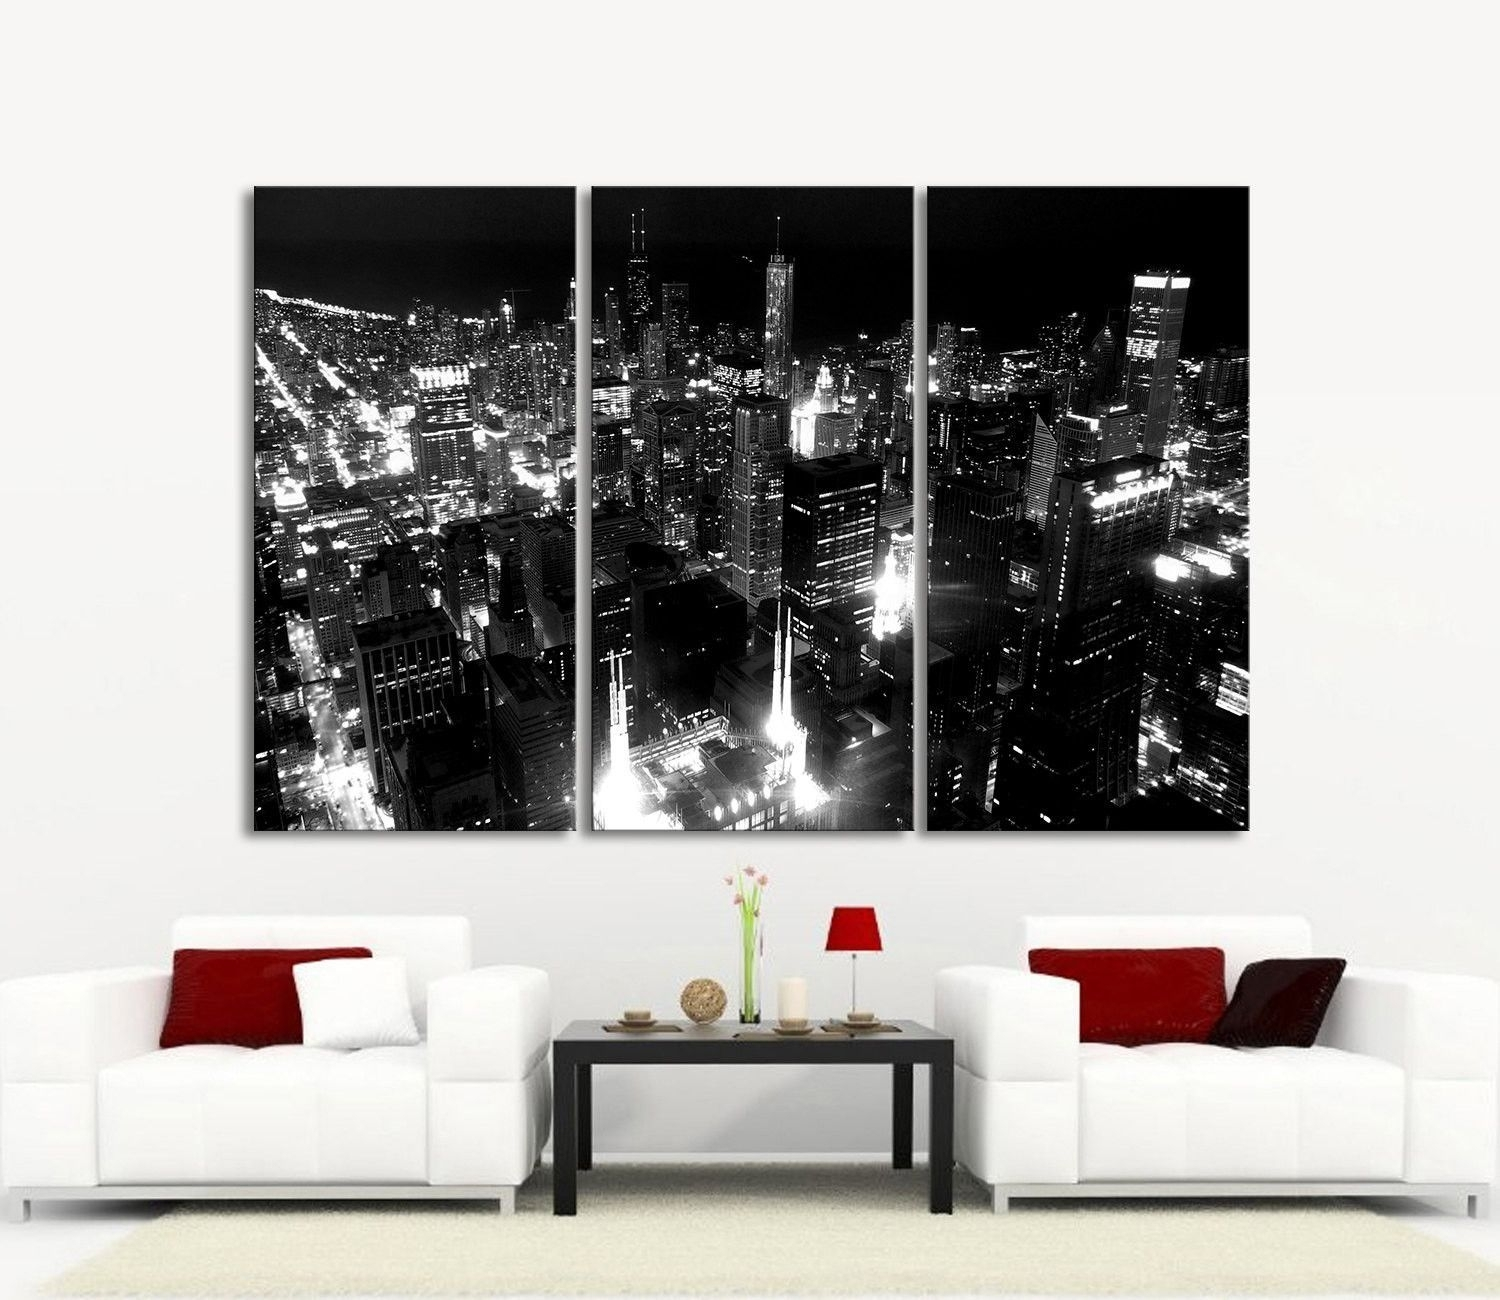 Large Wall Art Canvas Print Chicago City Skyline At Night – 3 Pertaining To Most Recent Framed Canvas Art Prints (View 11 of 15)